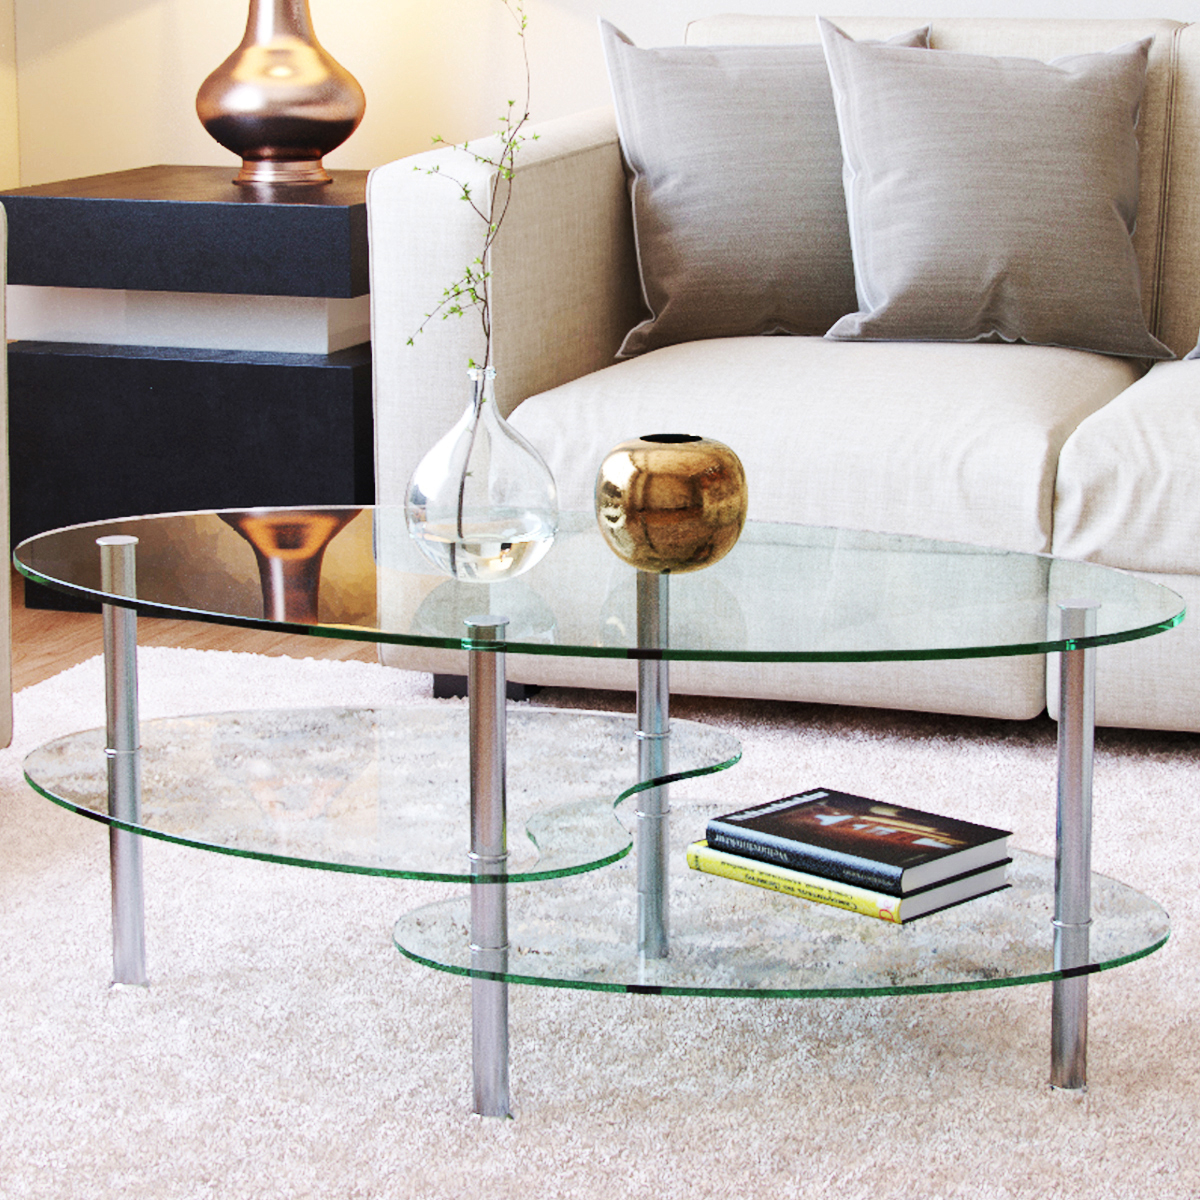 Ryan Rove Elm - Oval Two Tier Glass Coffee Table - Coffee Tables for Living Room, Kitchen, Bedroom and Office-Glass Shelves Unde